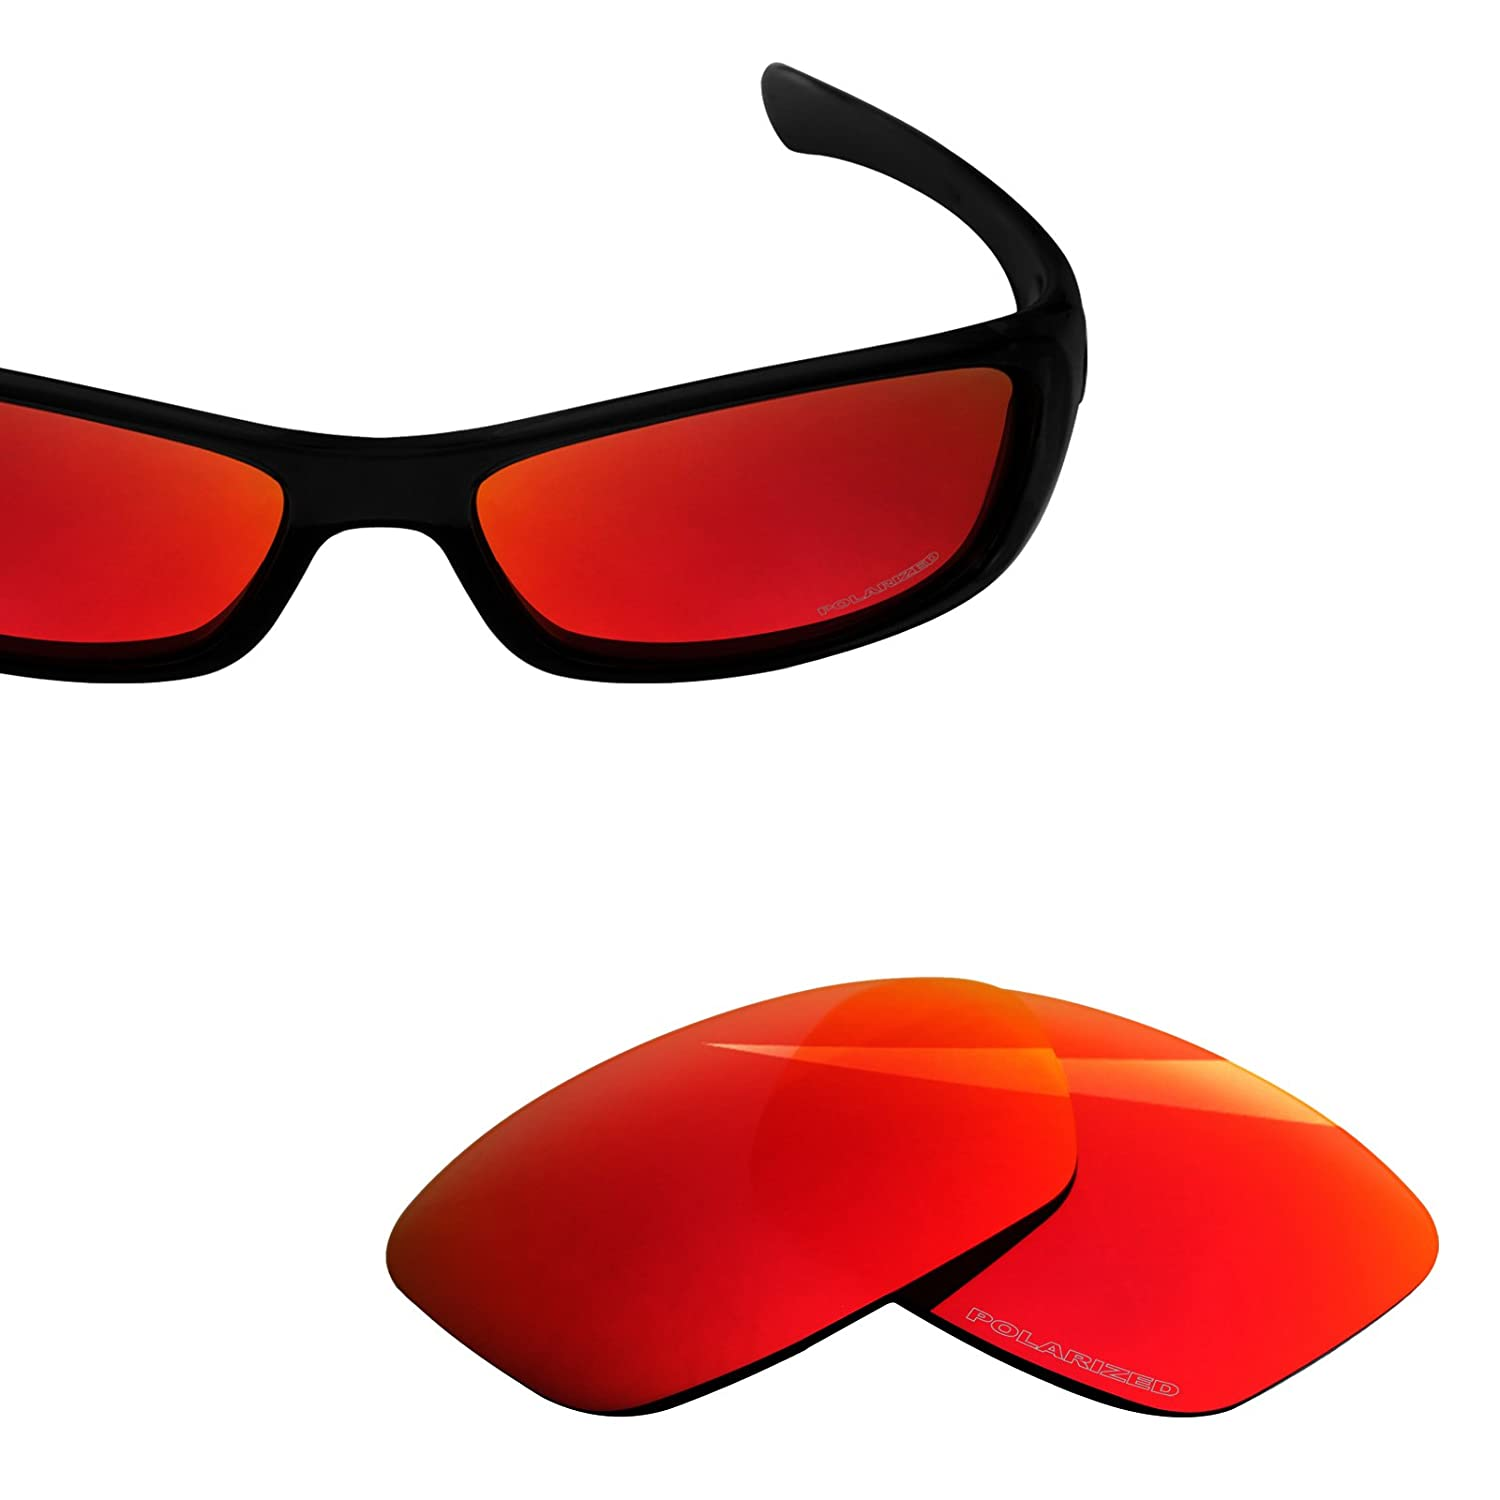 424a5972f2 BlazerBuck Anti-salt Polarized Replacement Lenses for Oakley Hijinx - Fire  Red  Amazon.co.uk  Clothing